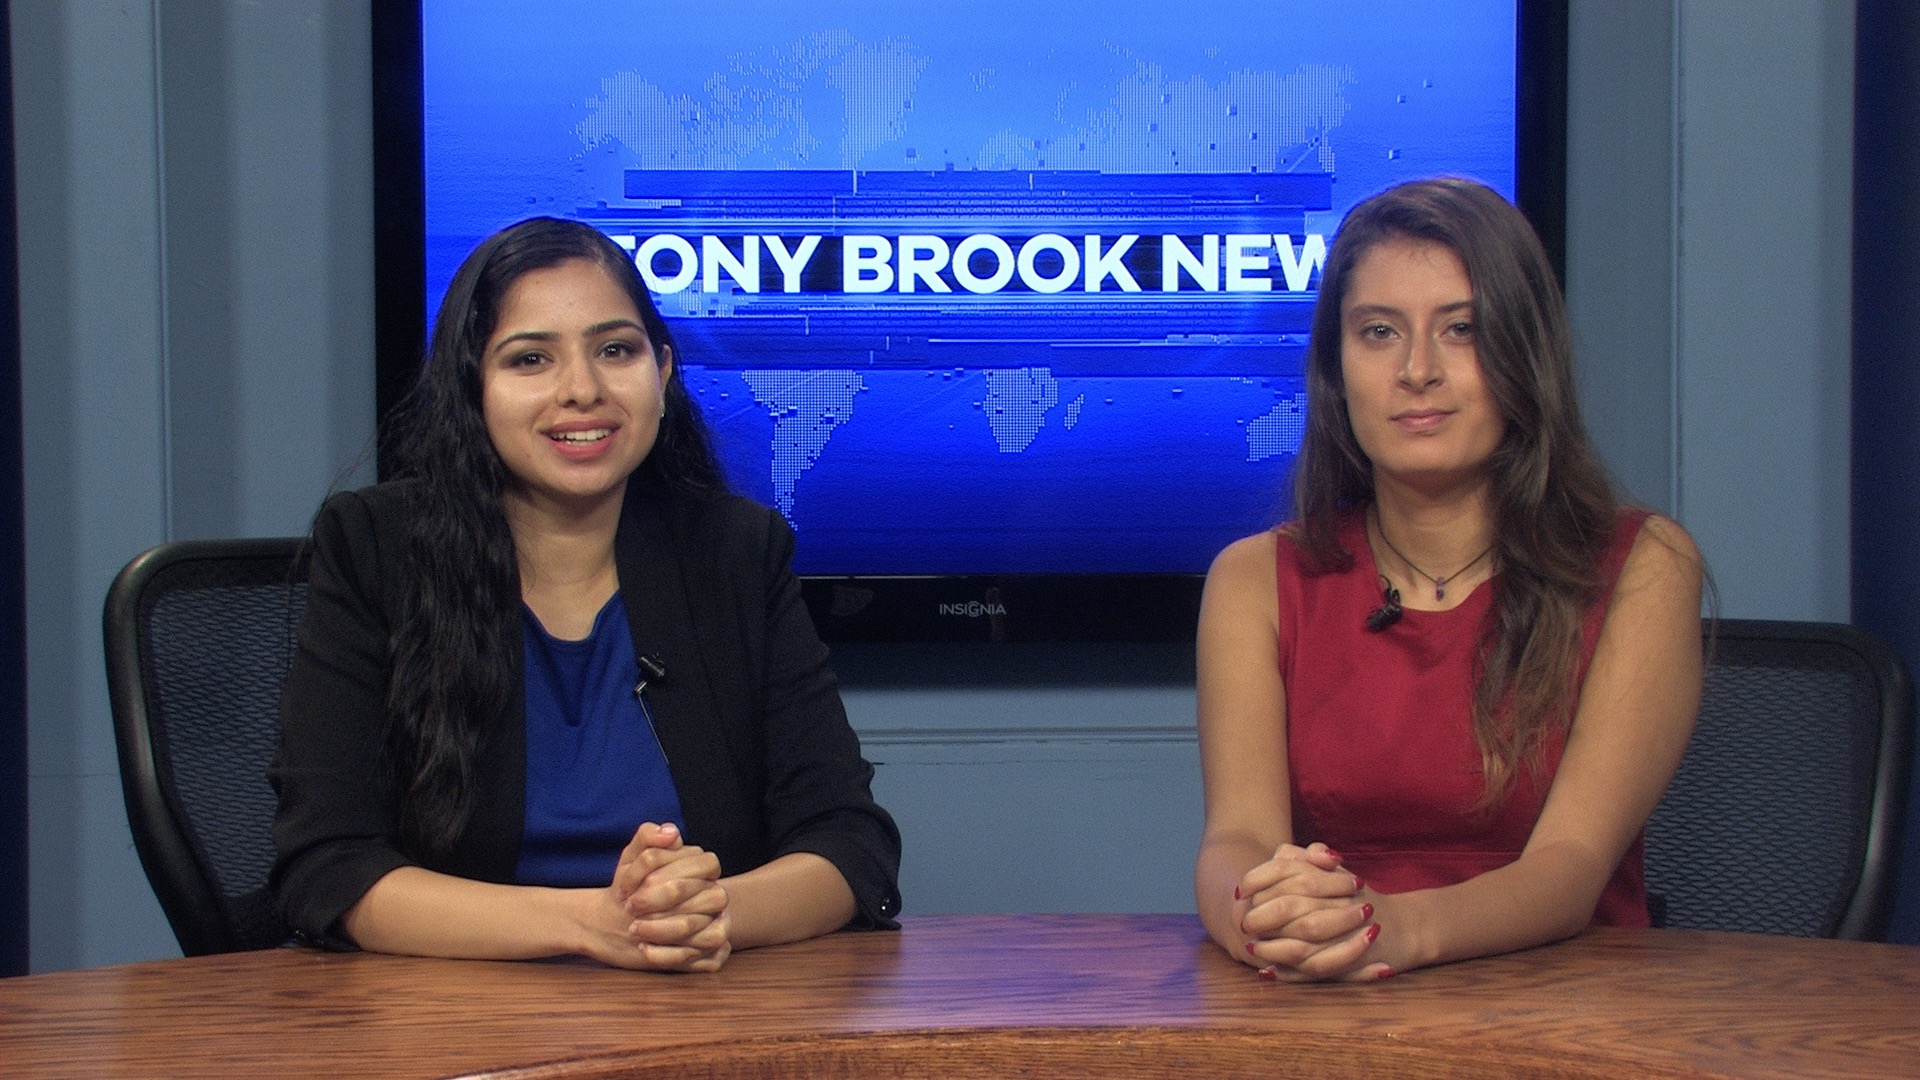 Stony Brook News – September 17, 2018